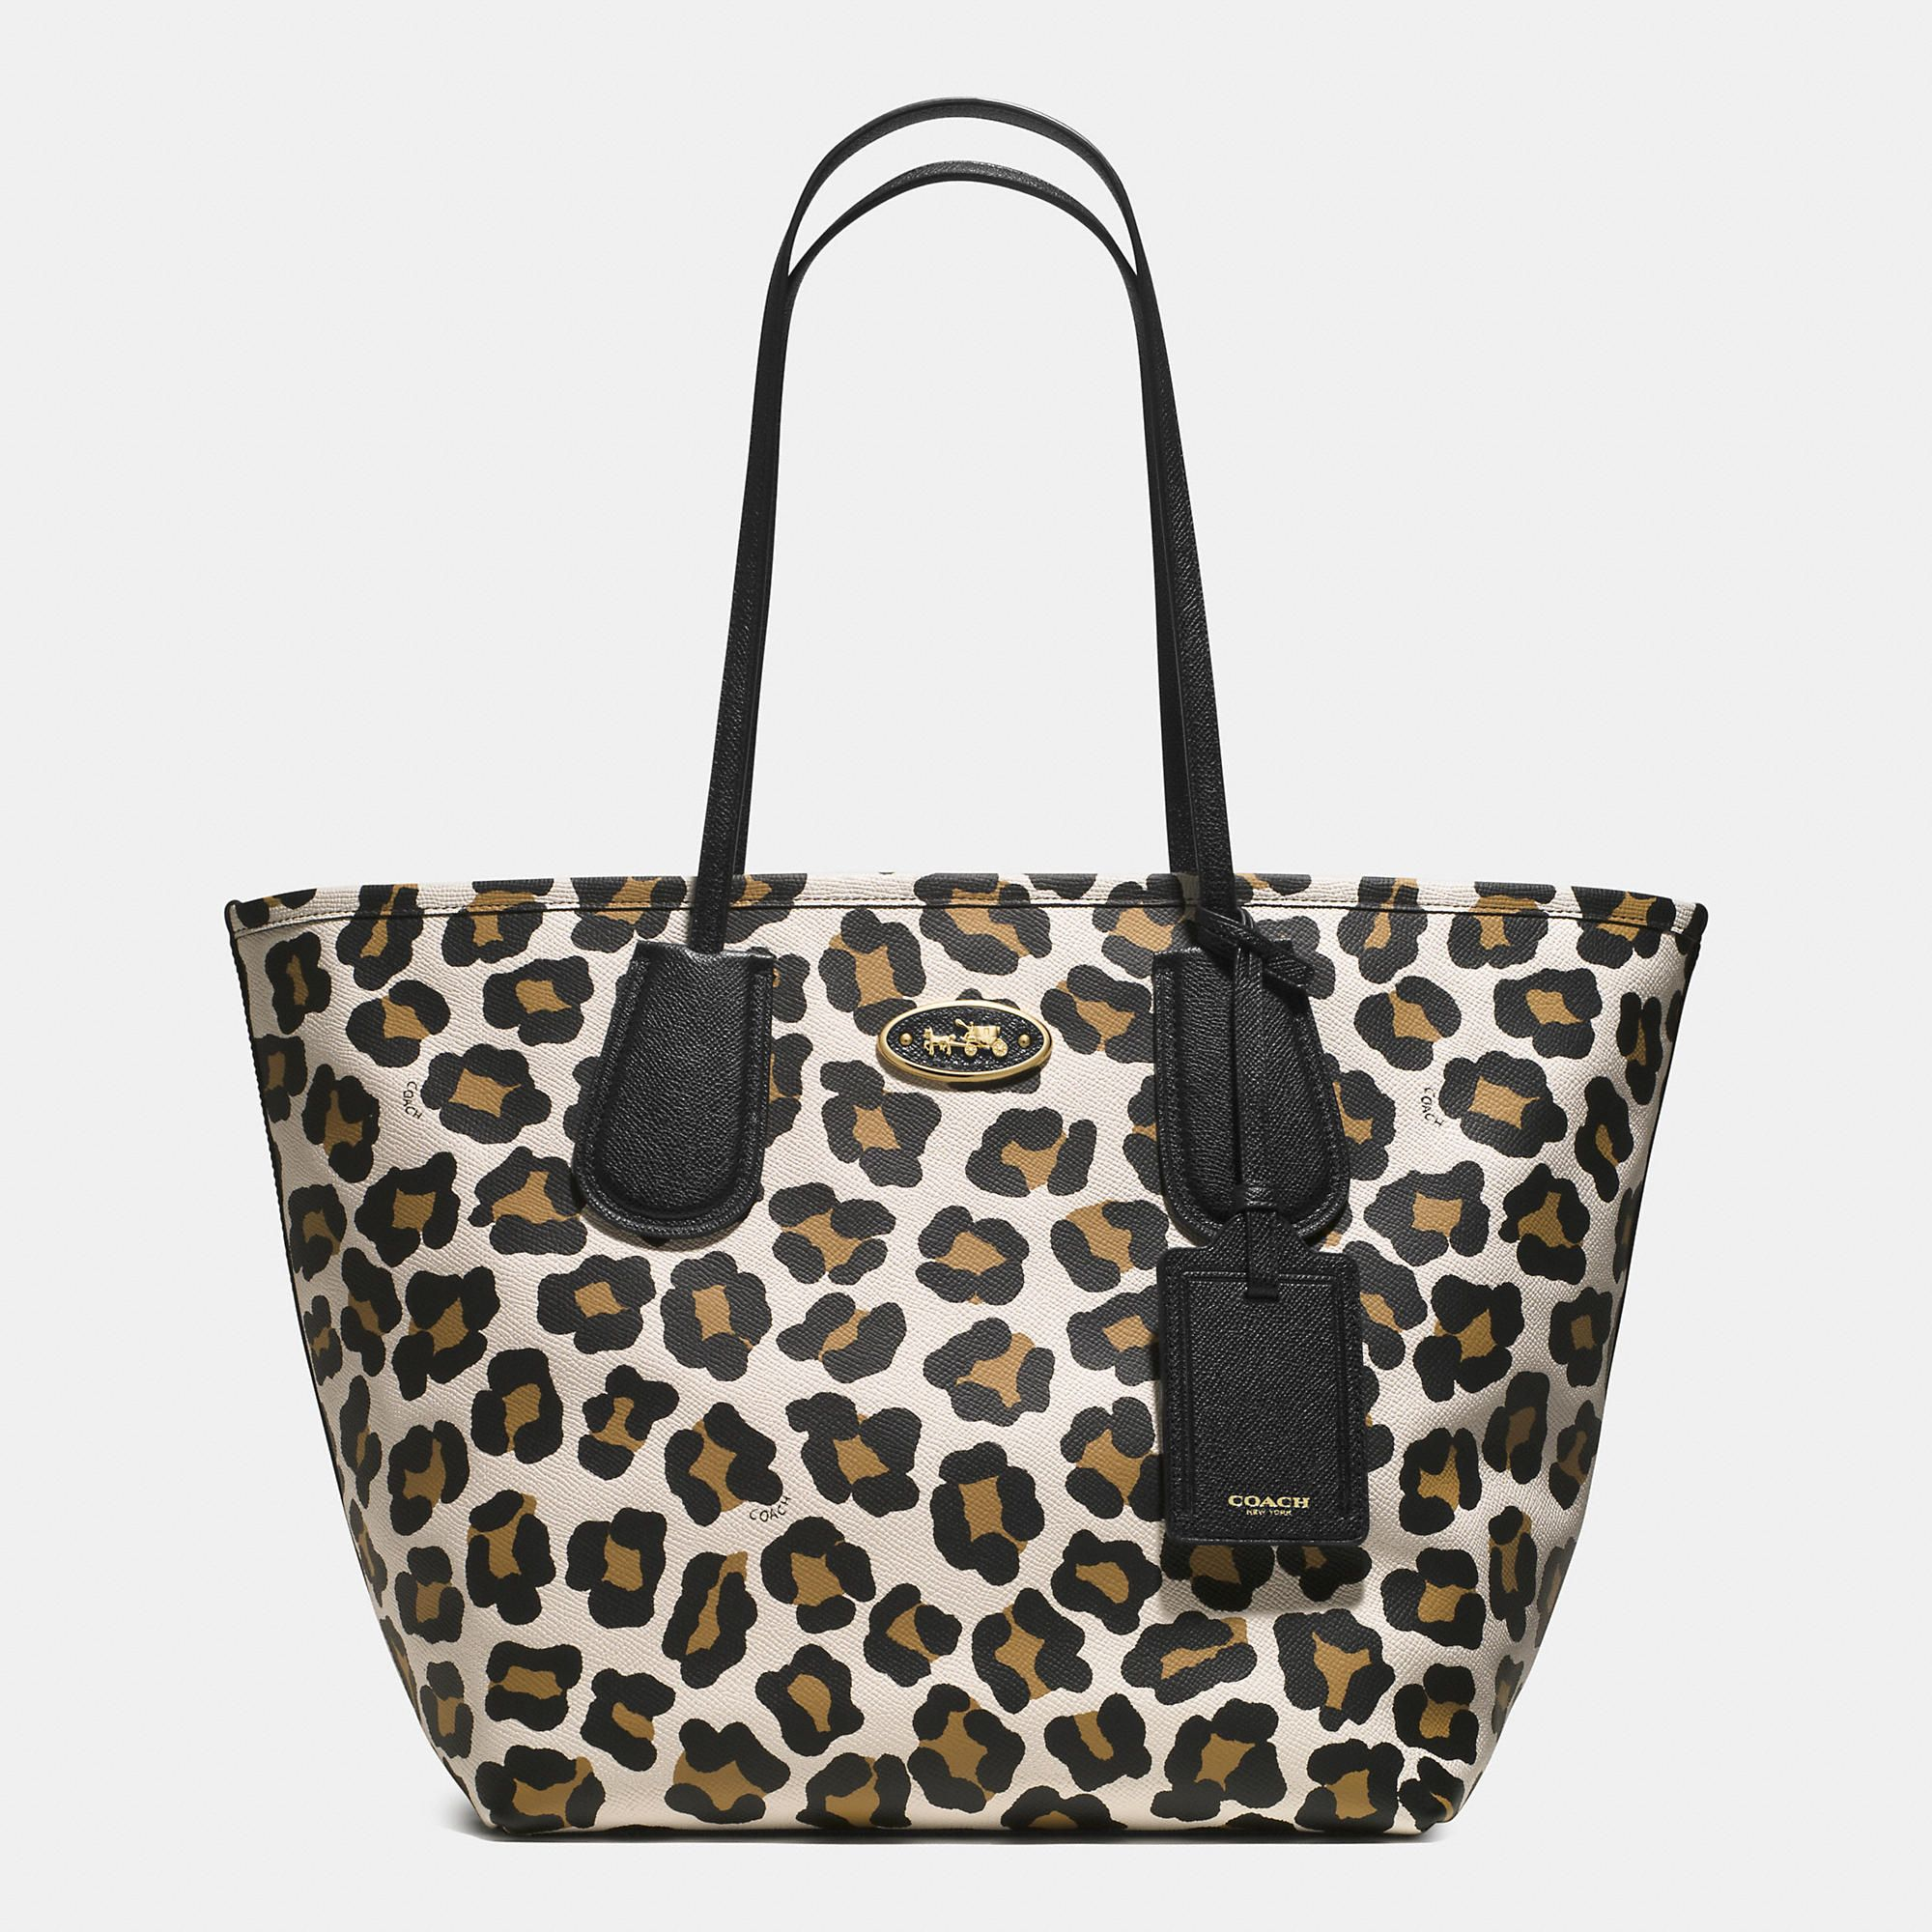 Coach Taxi Tote 28 In Ocelot Print Leather Designer Handbags On